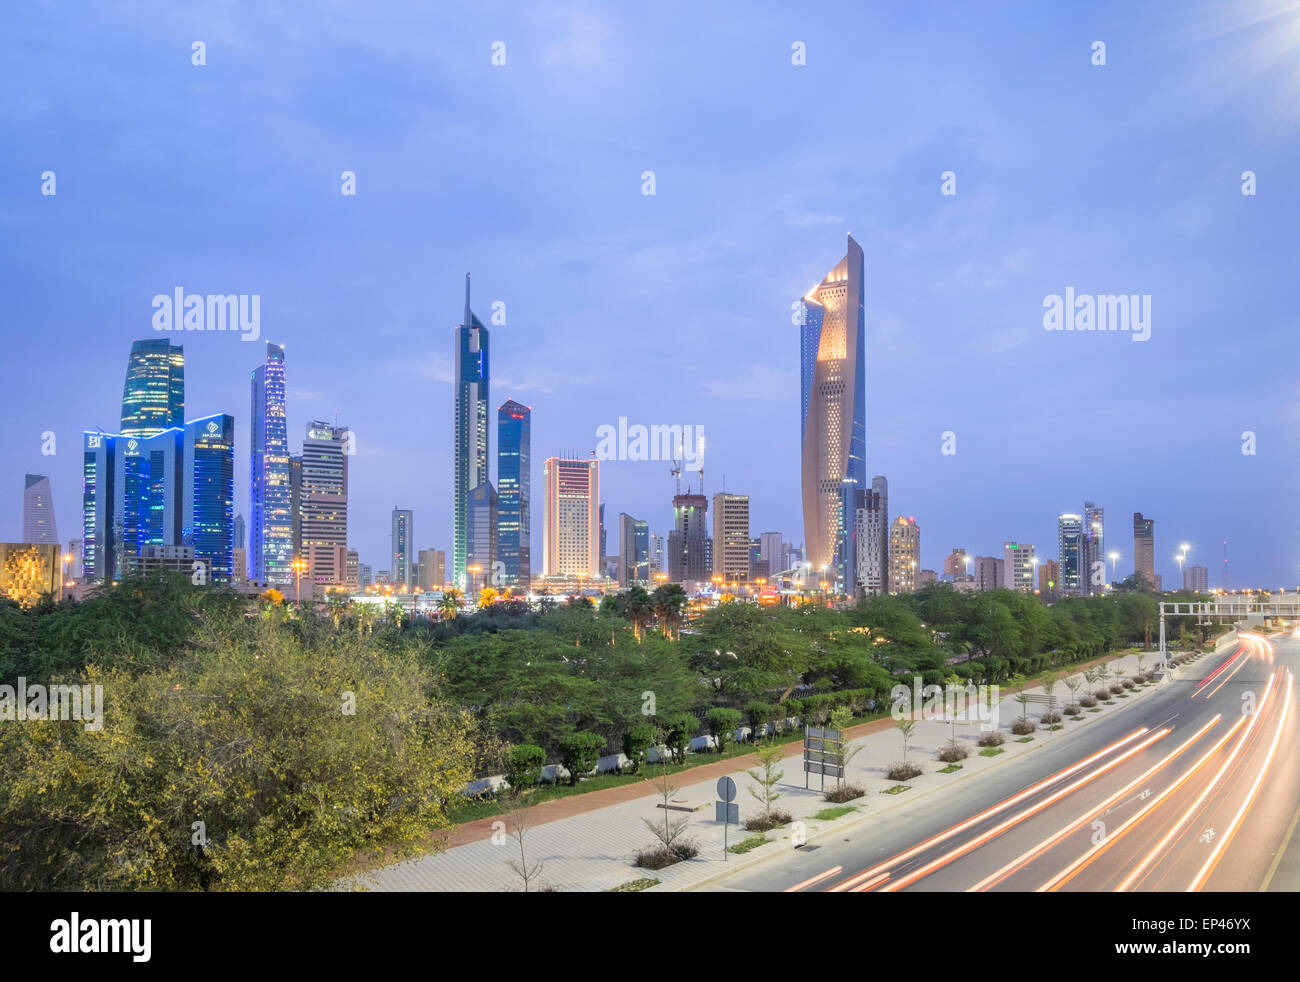 Skyline of Central Business District (CBD)  and First Ring Road motorway in Kuwait City, Kuwait - Stock Image